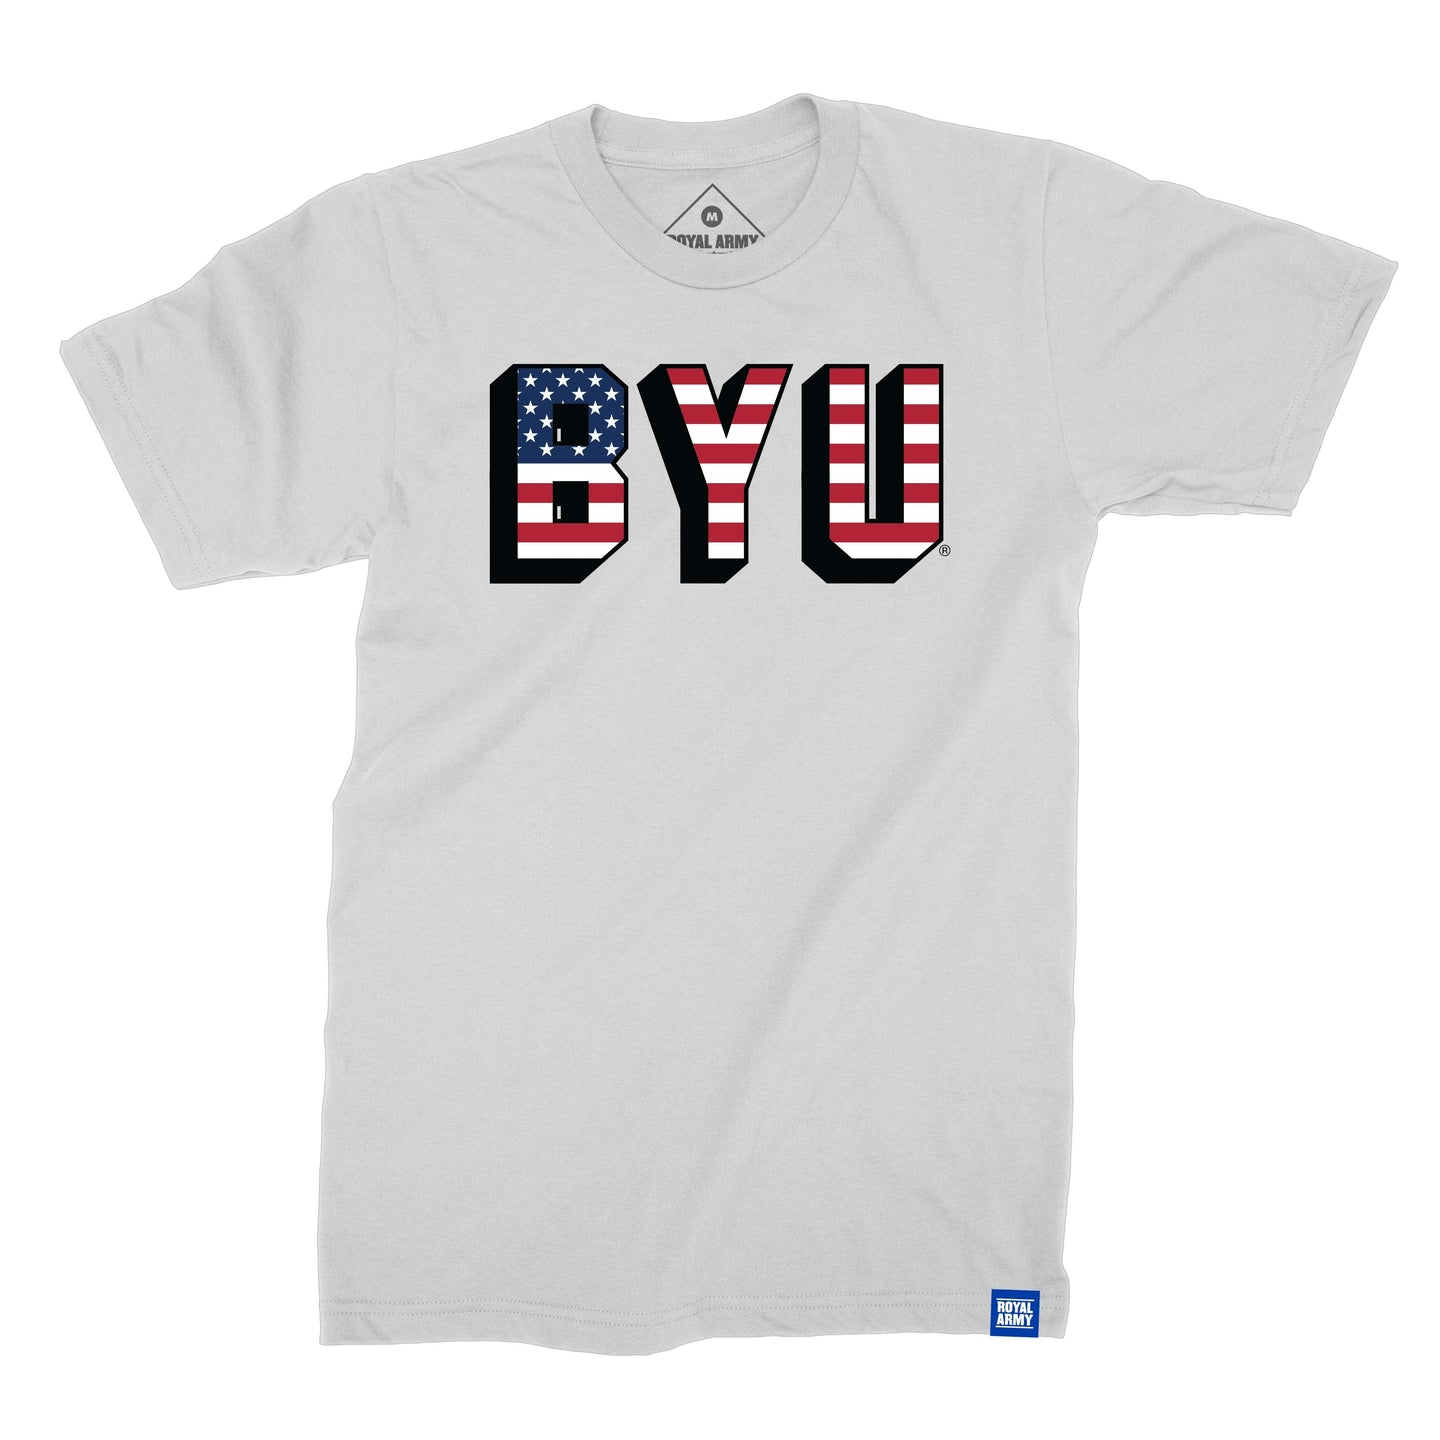 Stars and Stripes BYU t-shirt